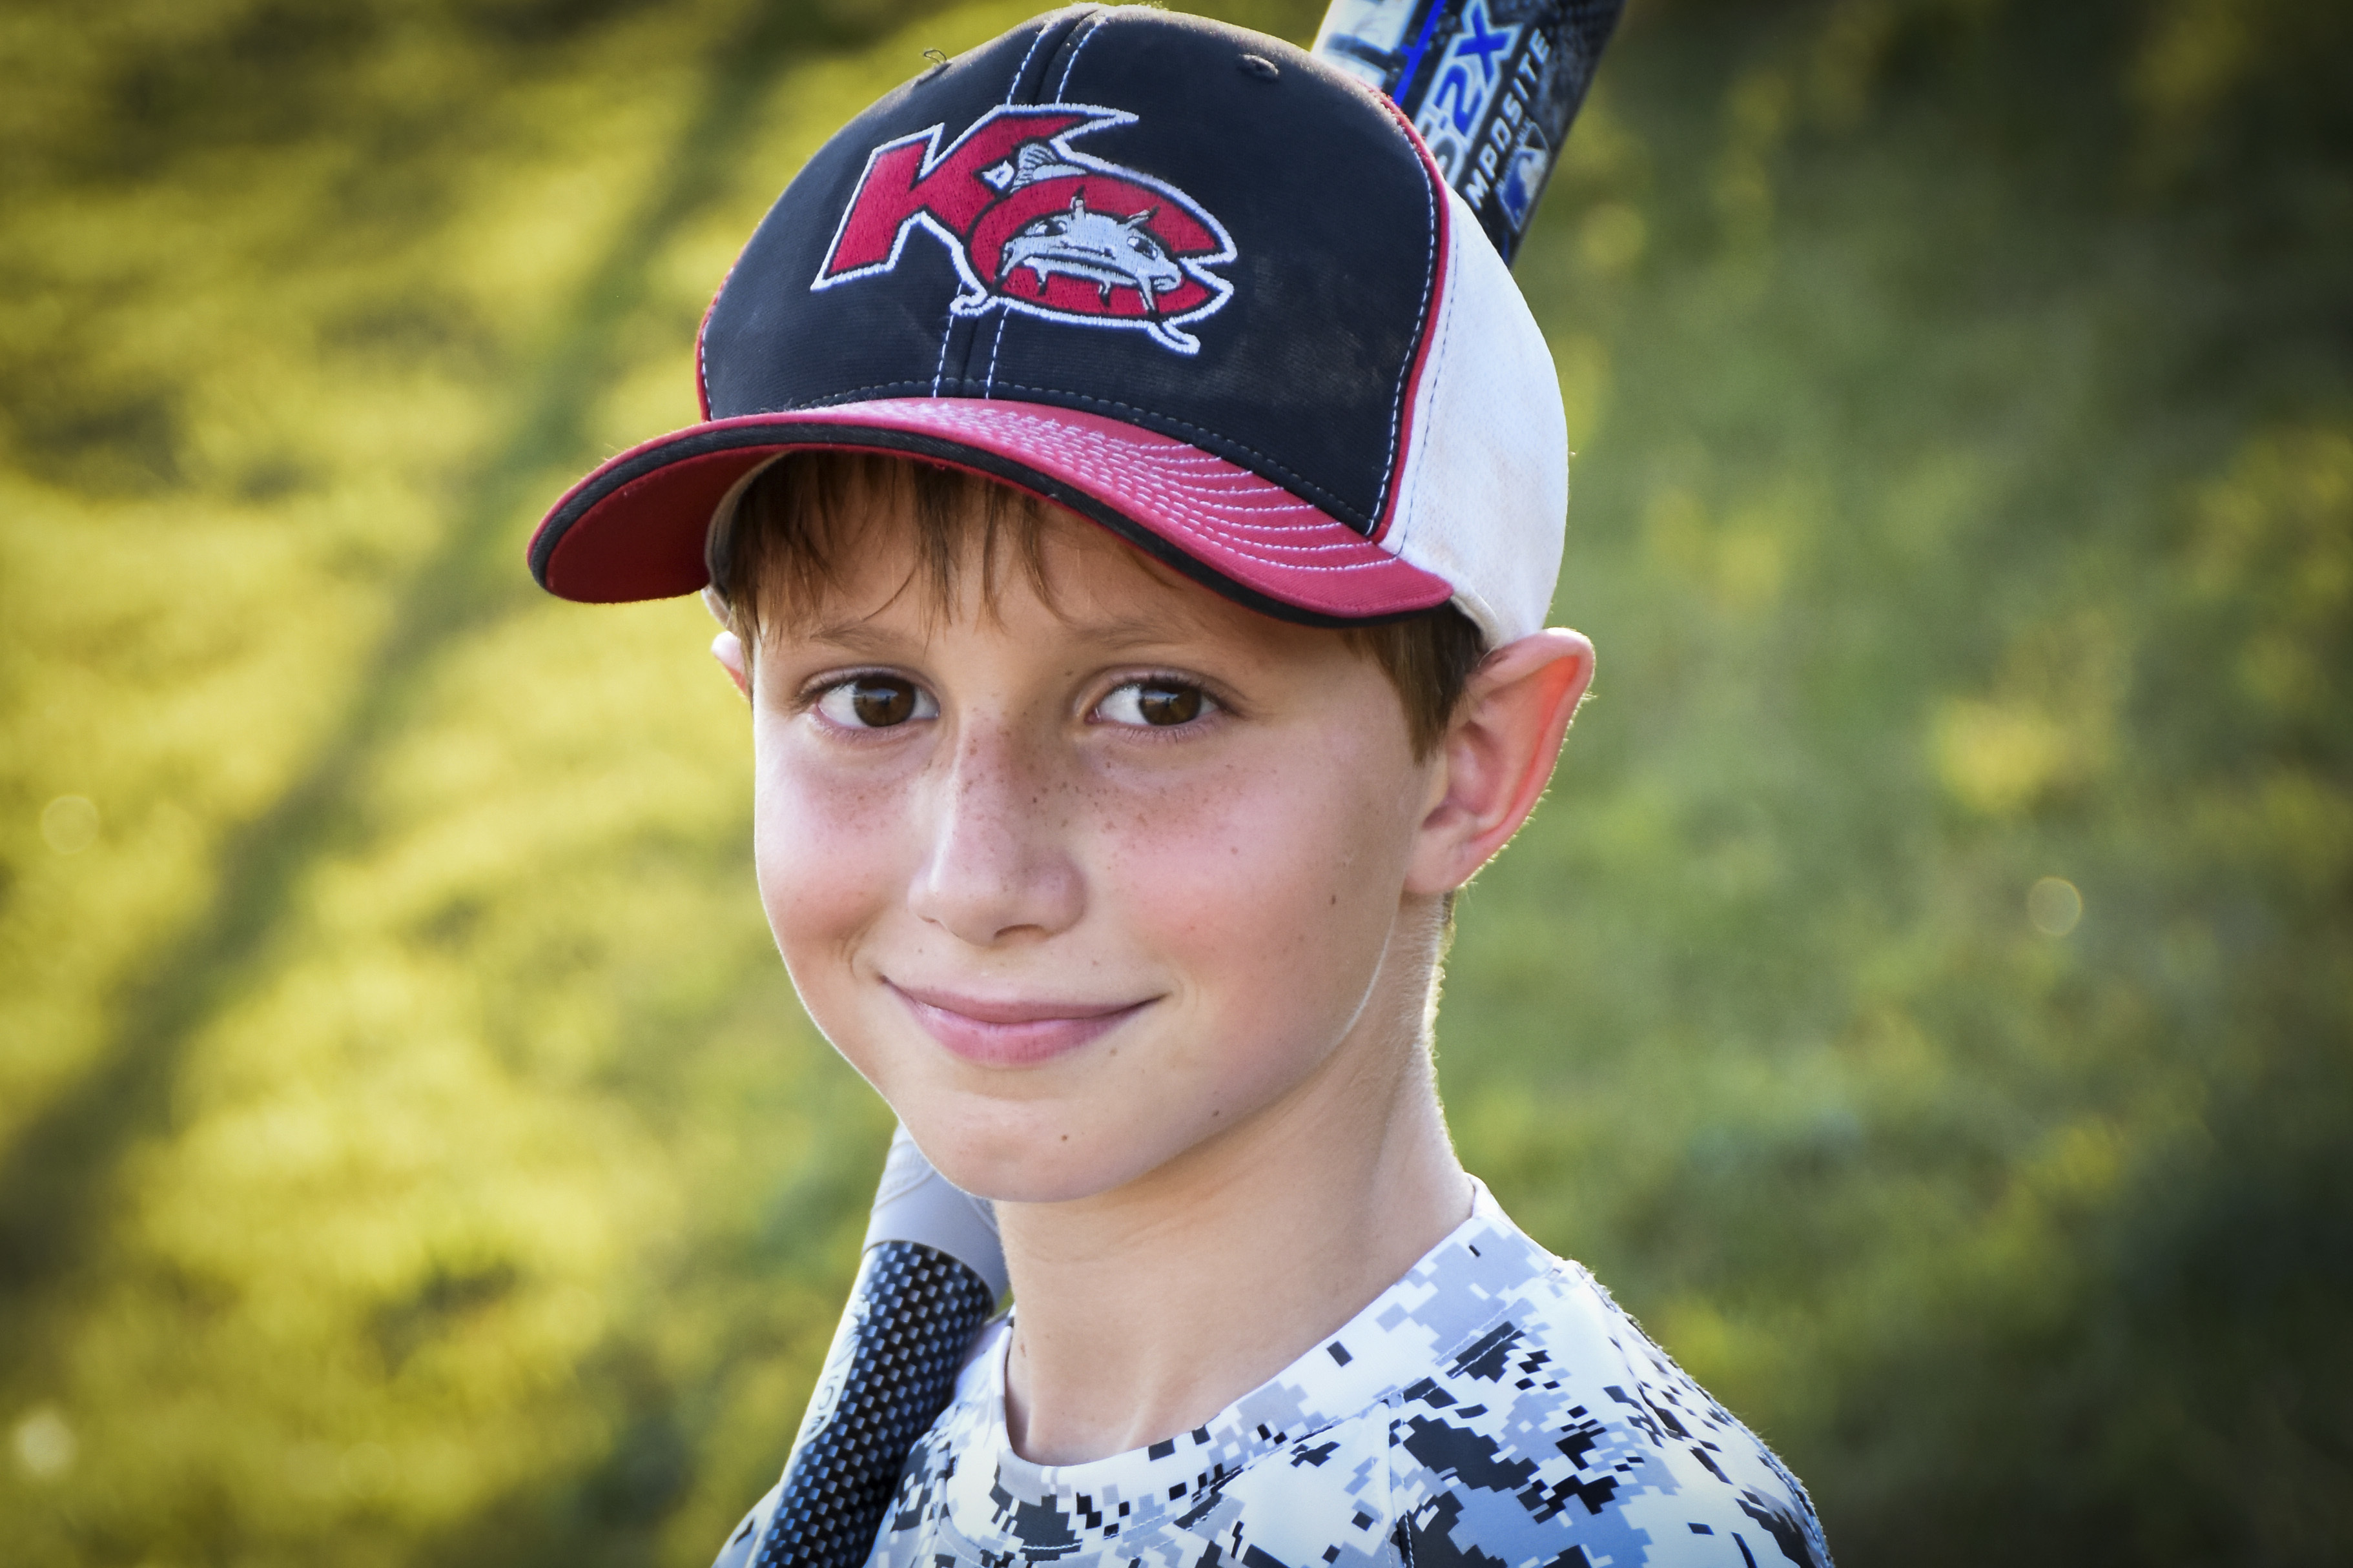 Report: Water Slide Raft Carrying Slain 10-Year-Old Met Ride's Weight Requirement